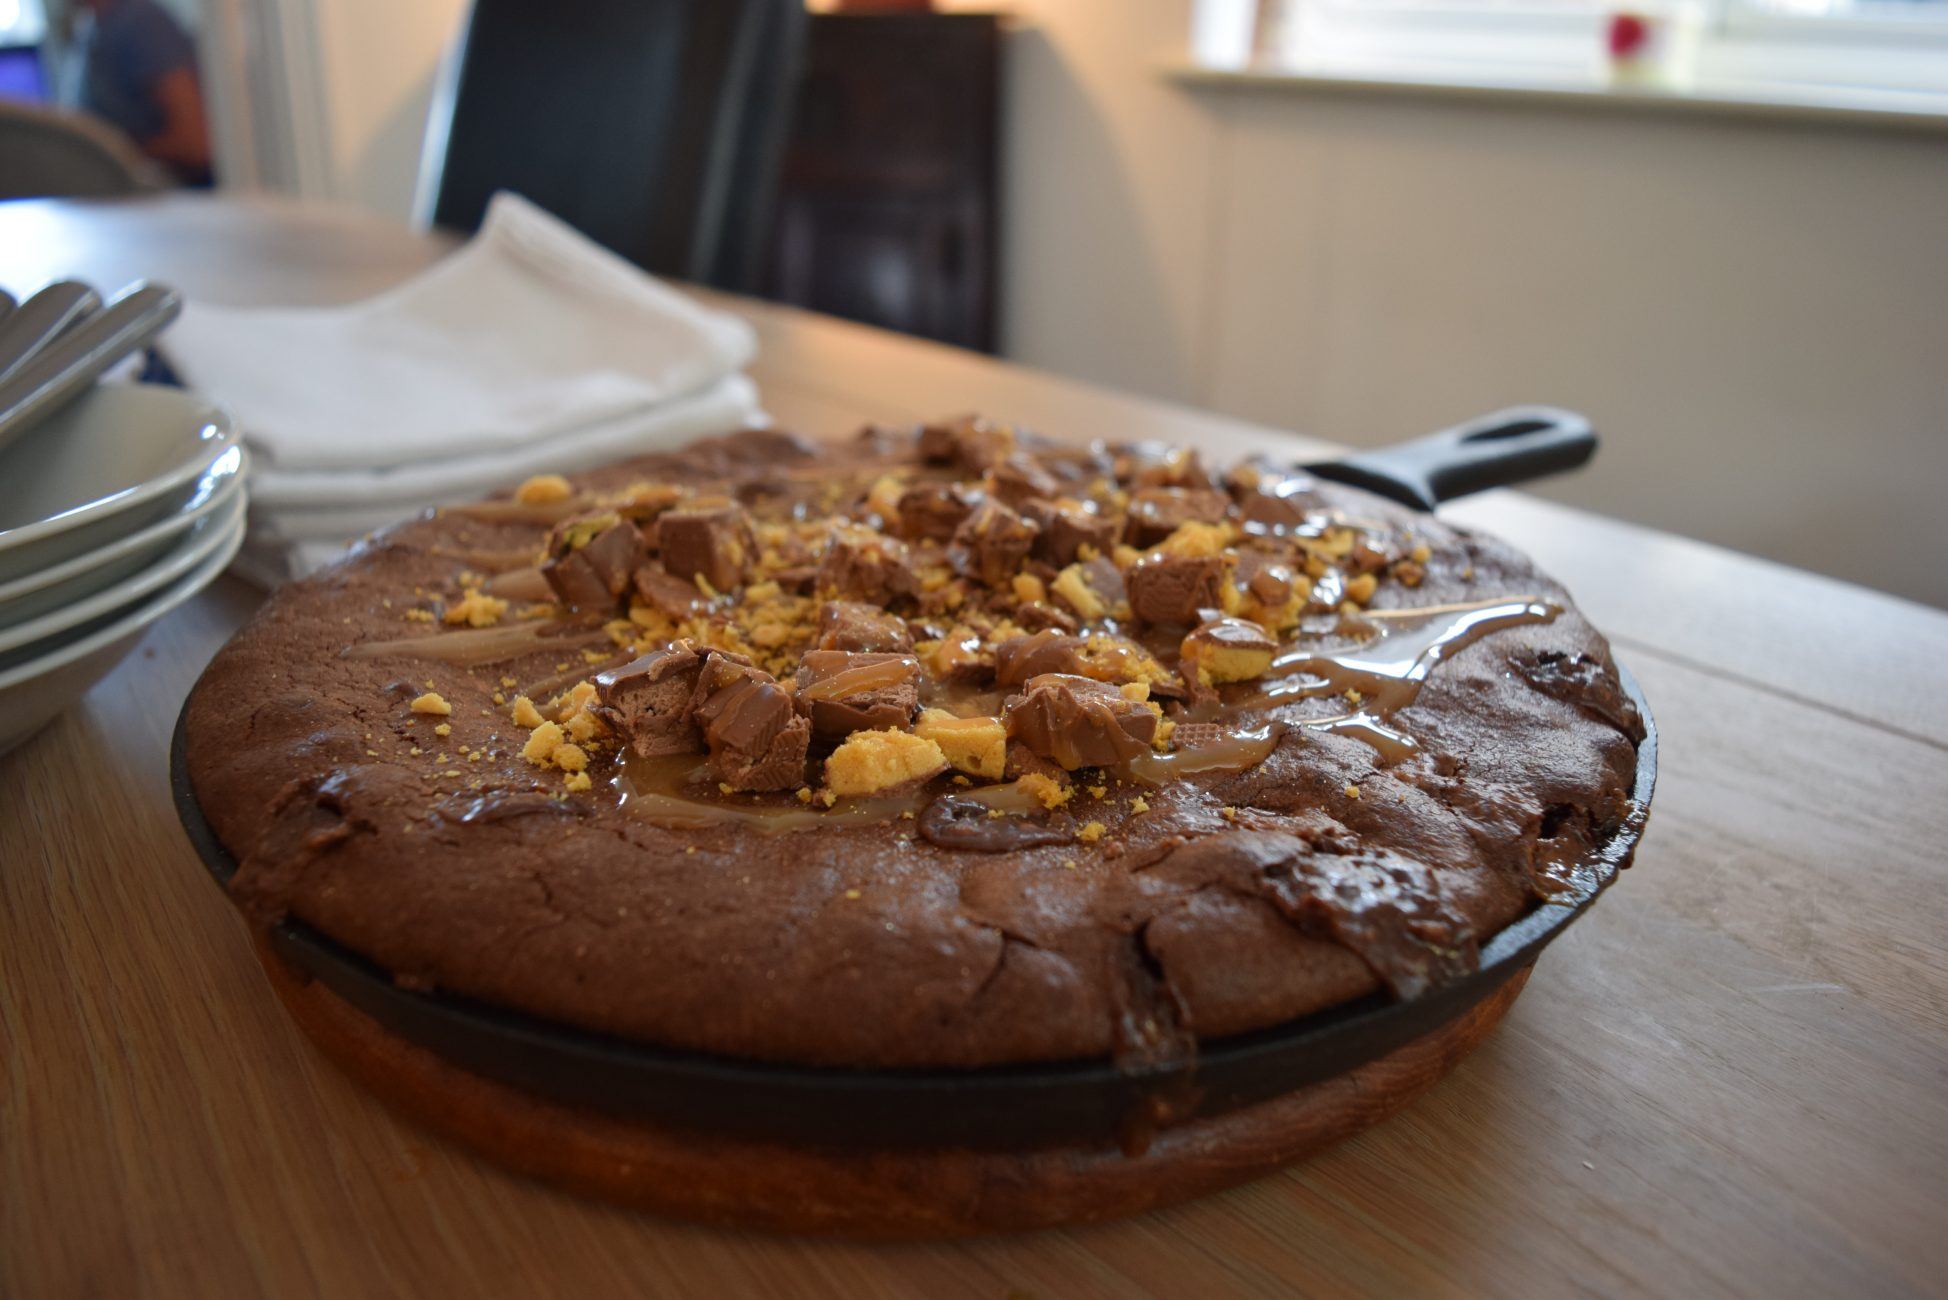 Hot-toffee-brownie-pudding-recipe-lucyloves-foodblog